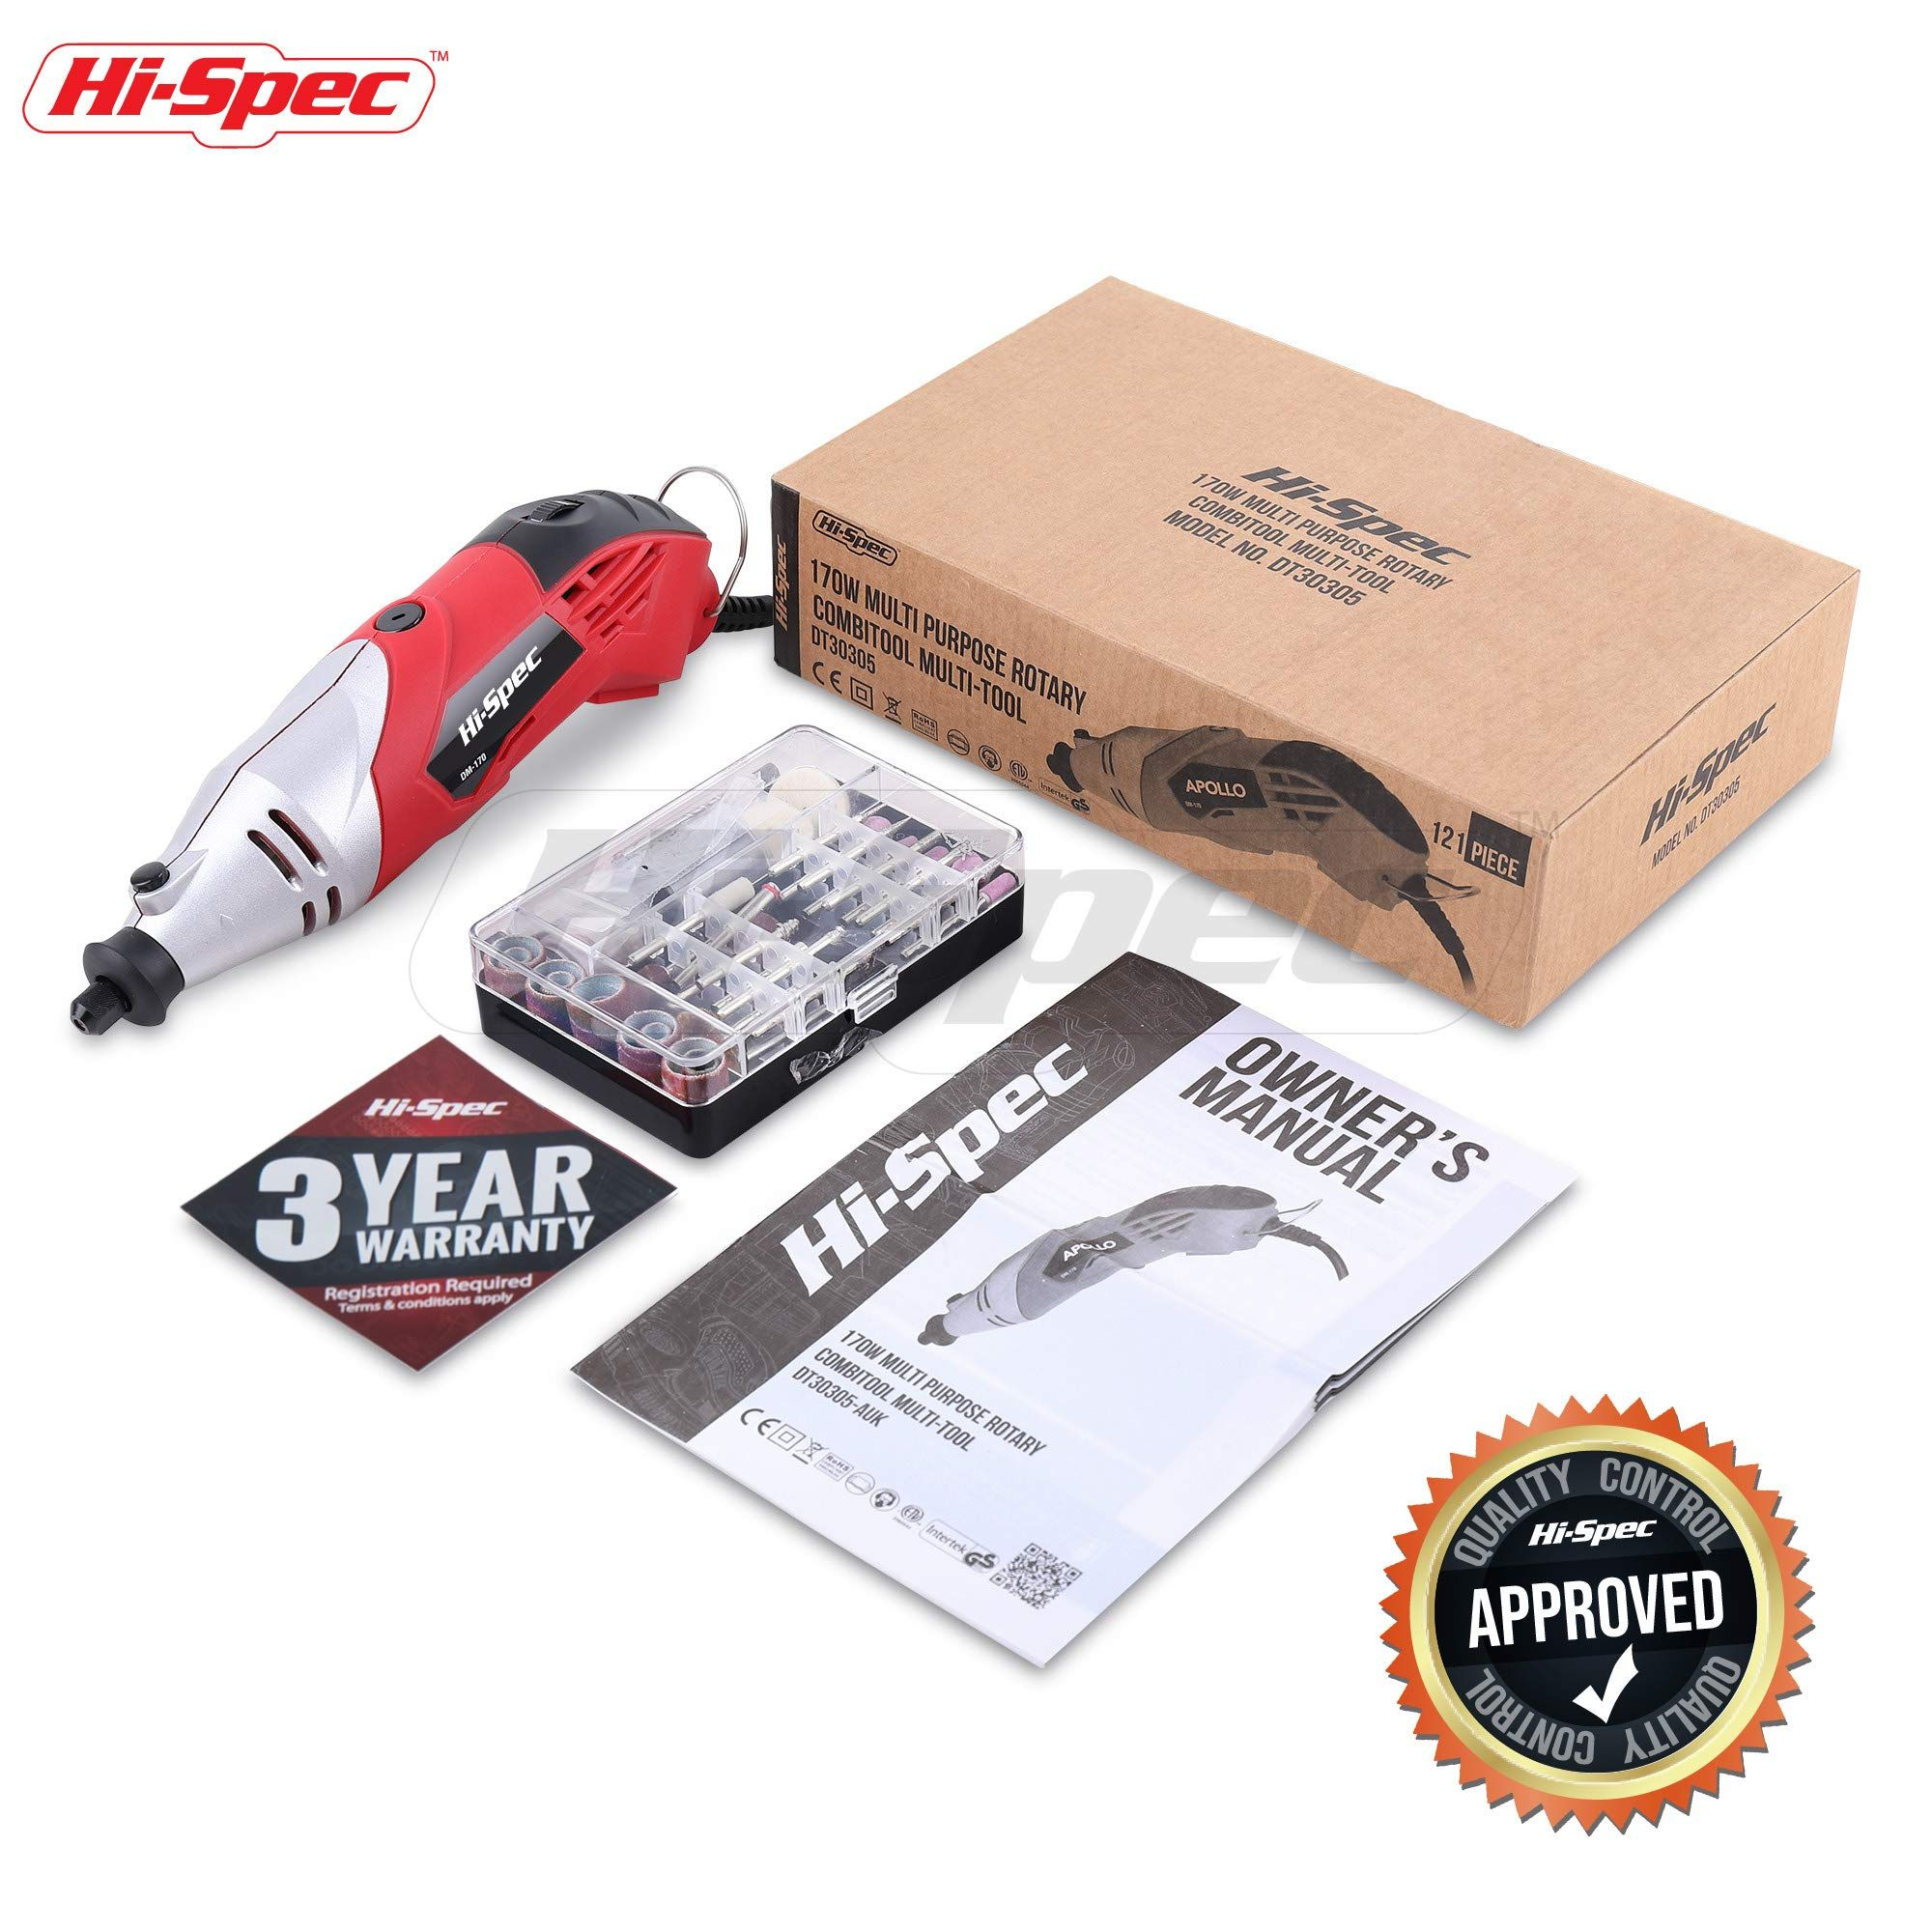 HiSpec 1 4A 170W Rotary Tool with Variable Speed Switch and